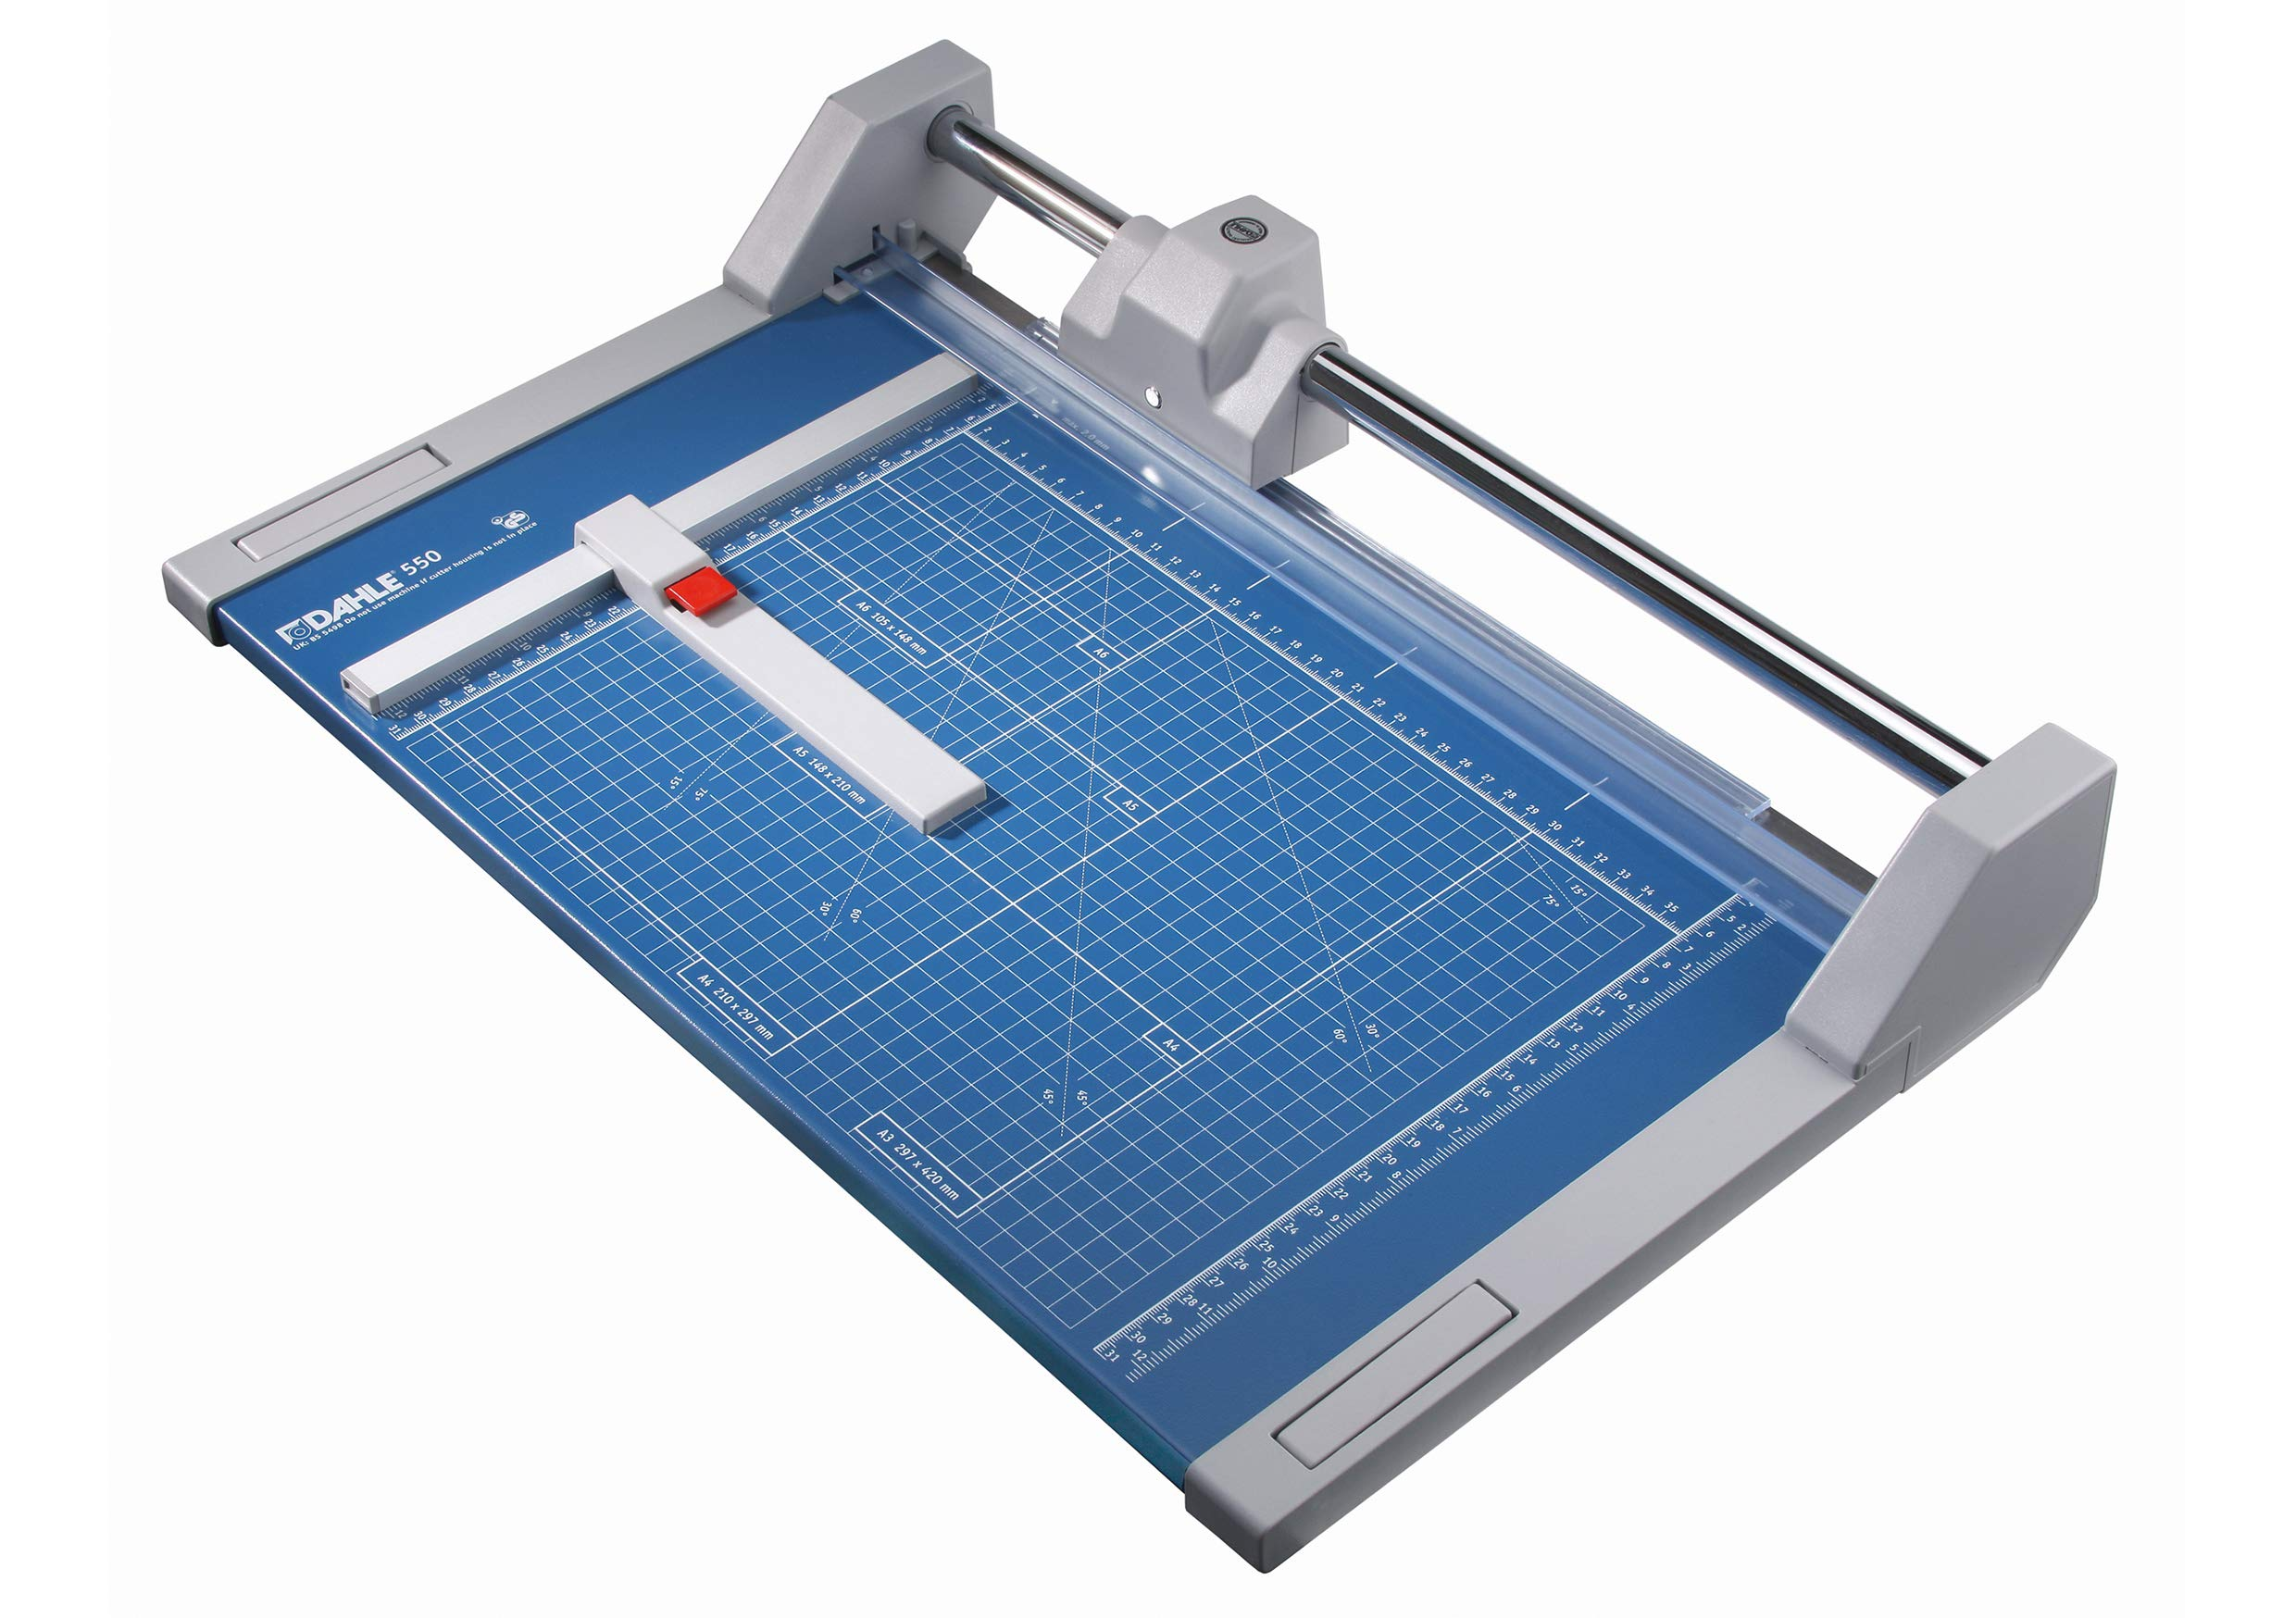 Dahle D550 Professional Trimmer 14 1/8 Inch by Dahle